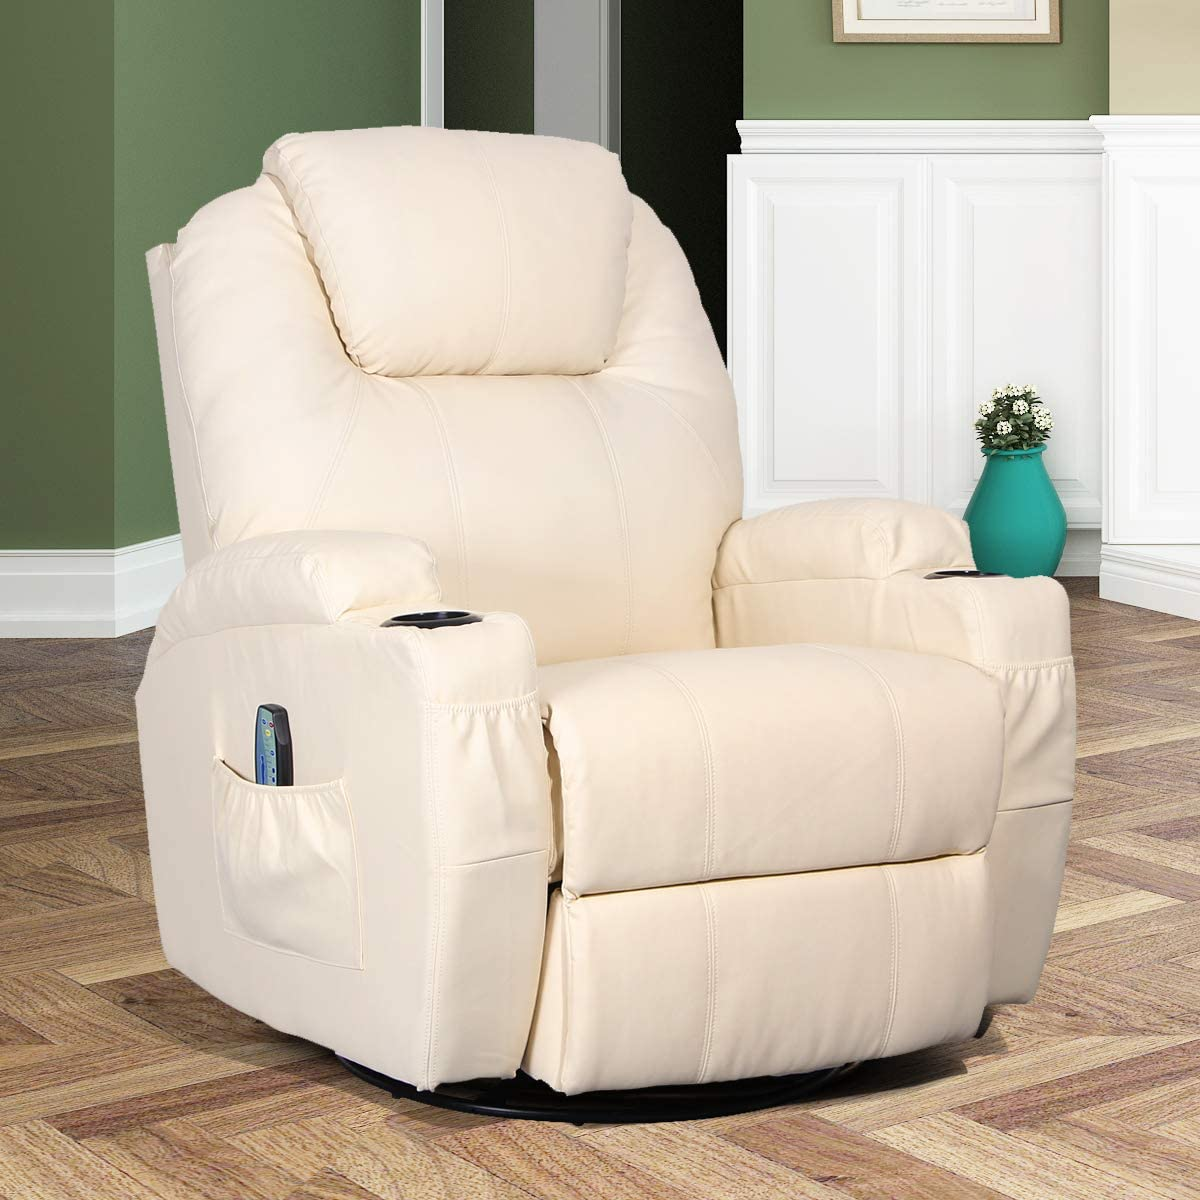 Esright Recliner Chair - Recliners to Sleep